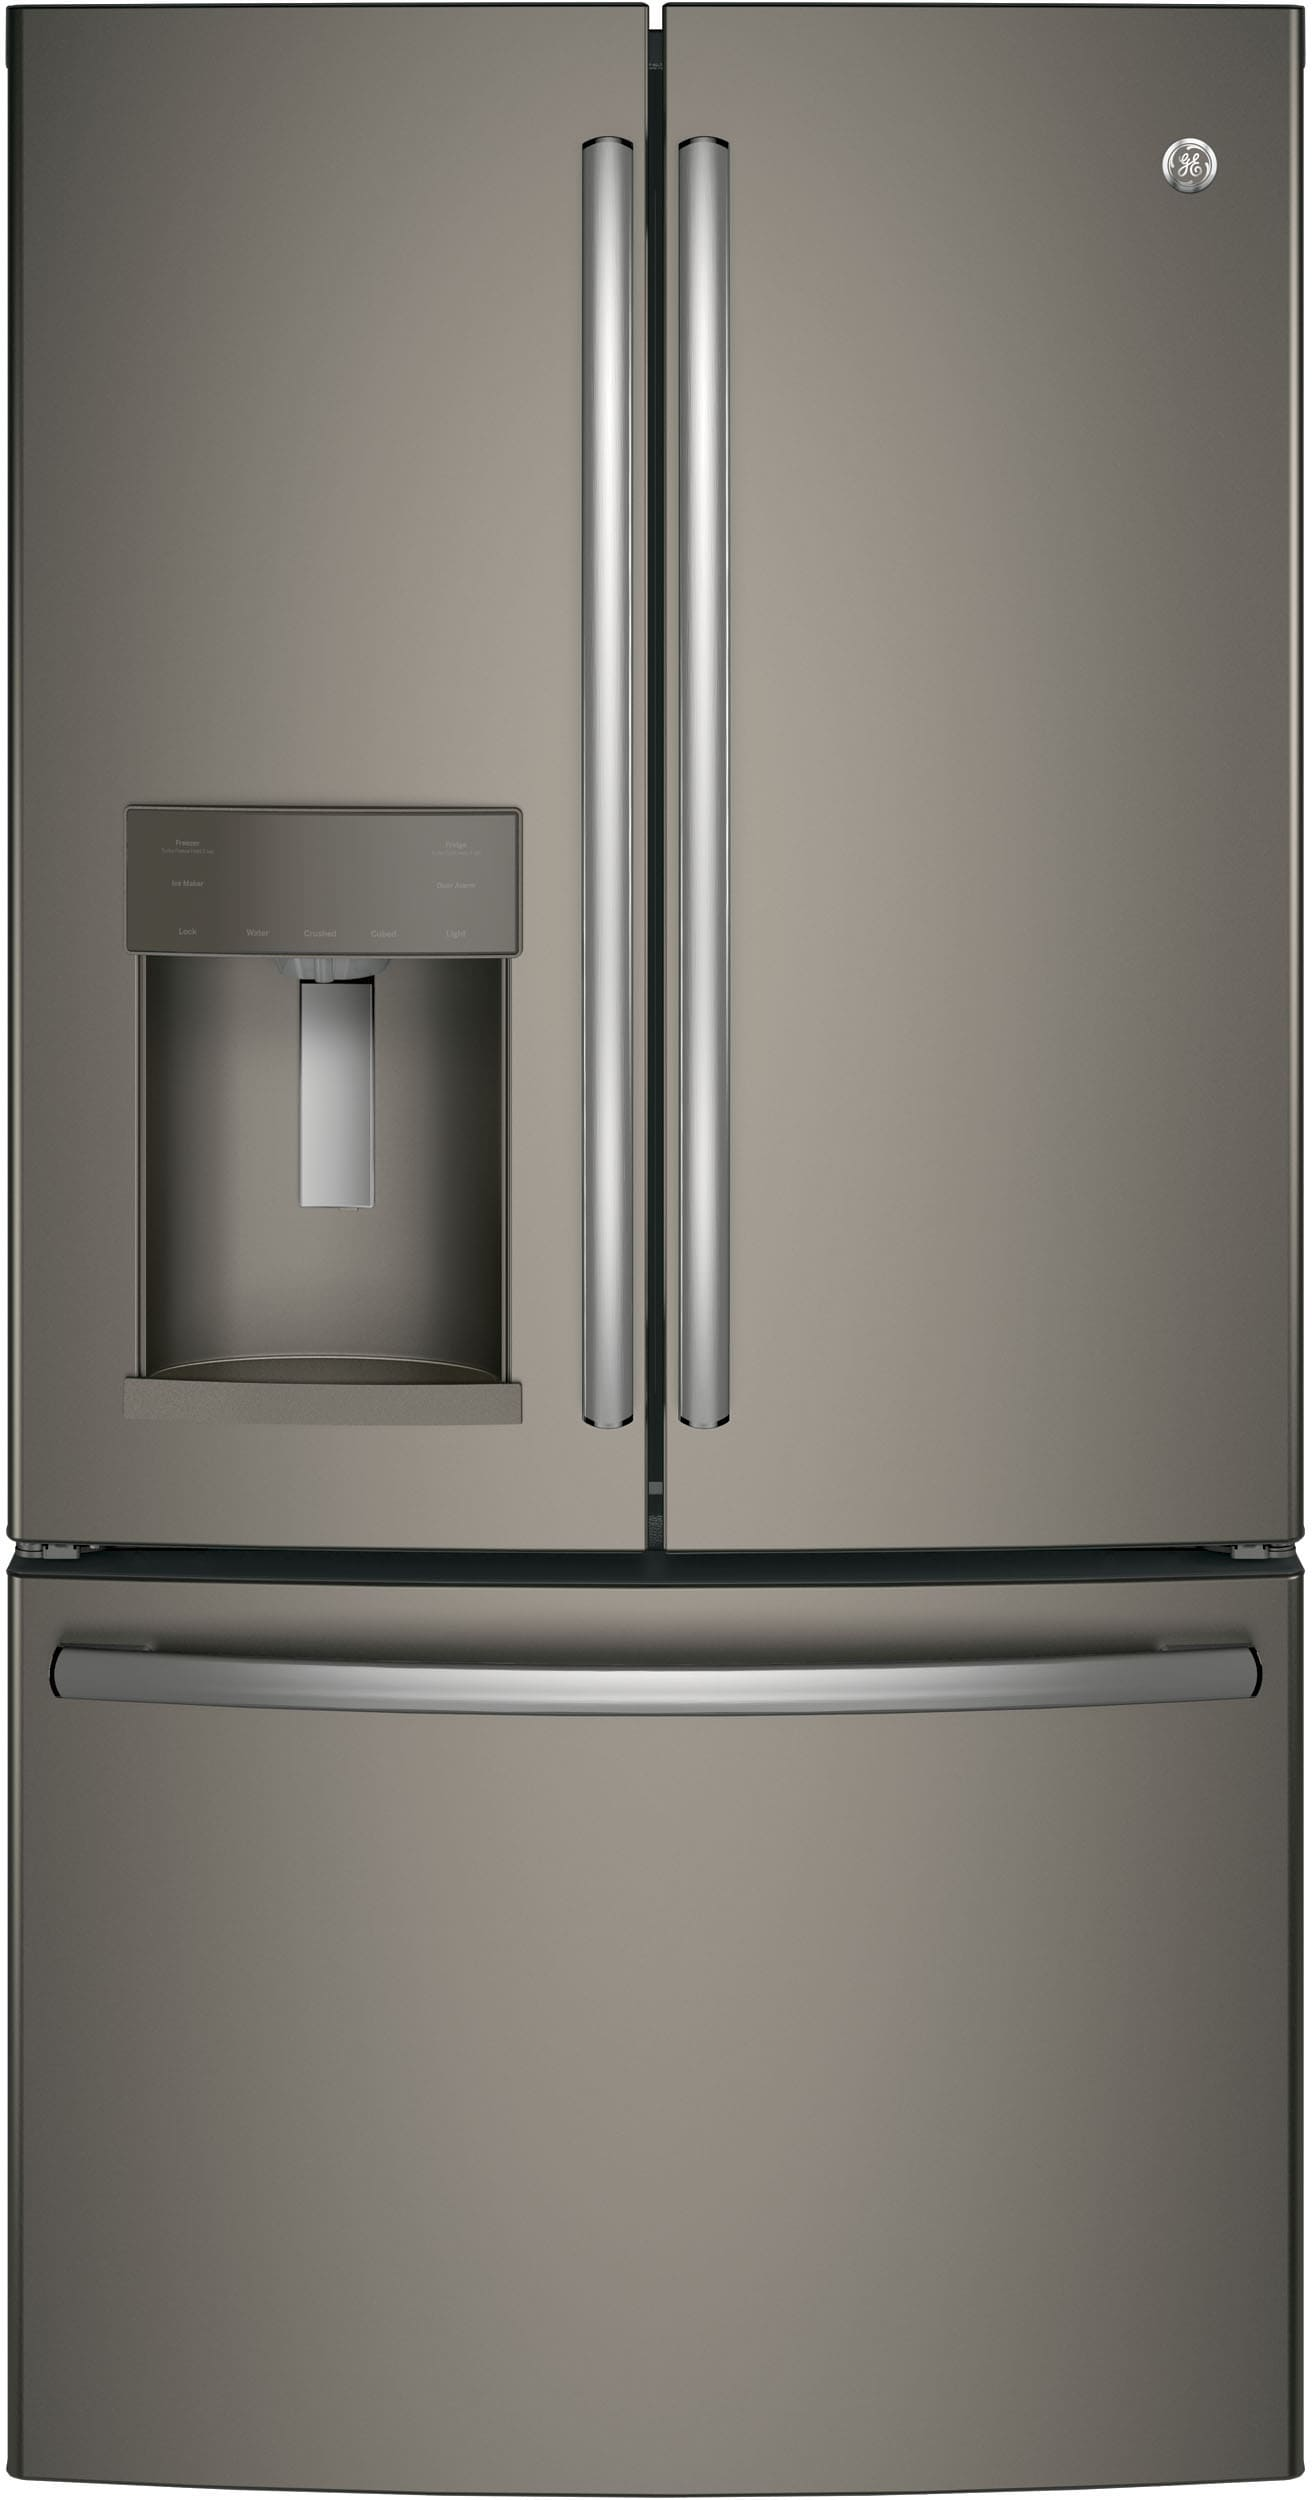 GE GFE26GMKES 36 Inch French Door Refrigerator with TwinChill